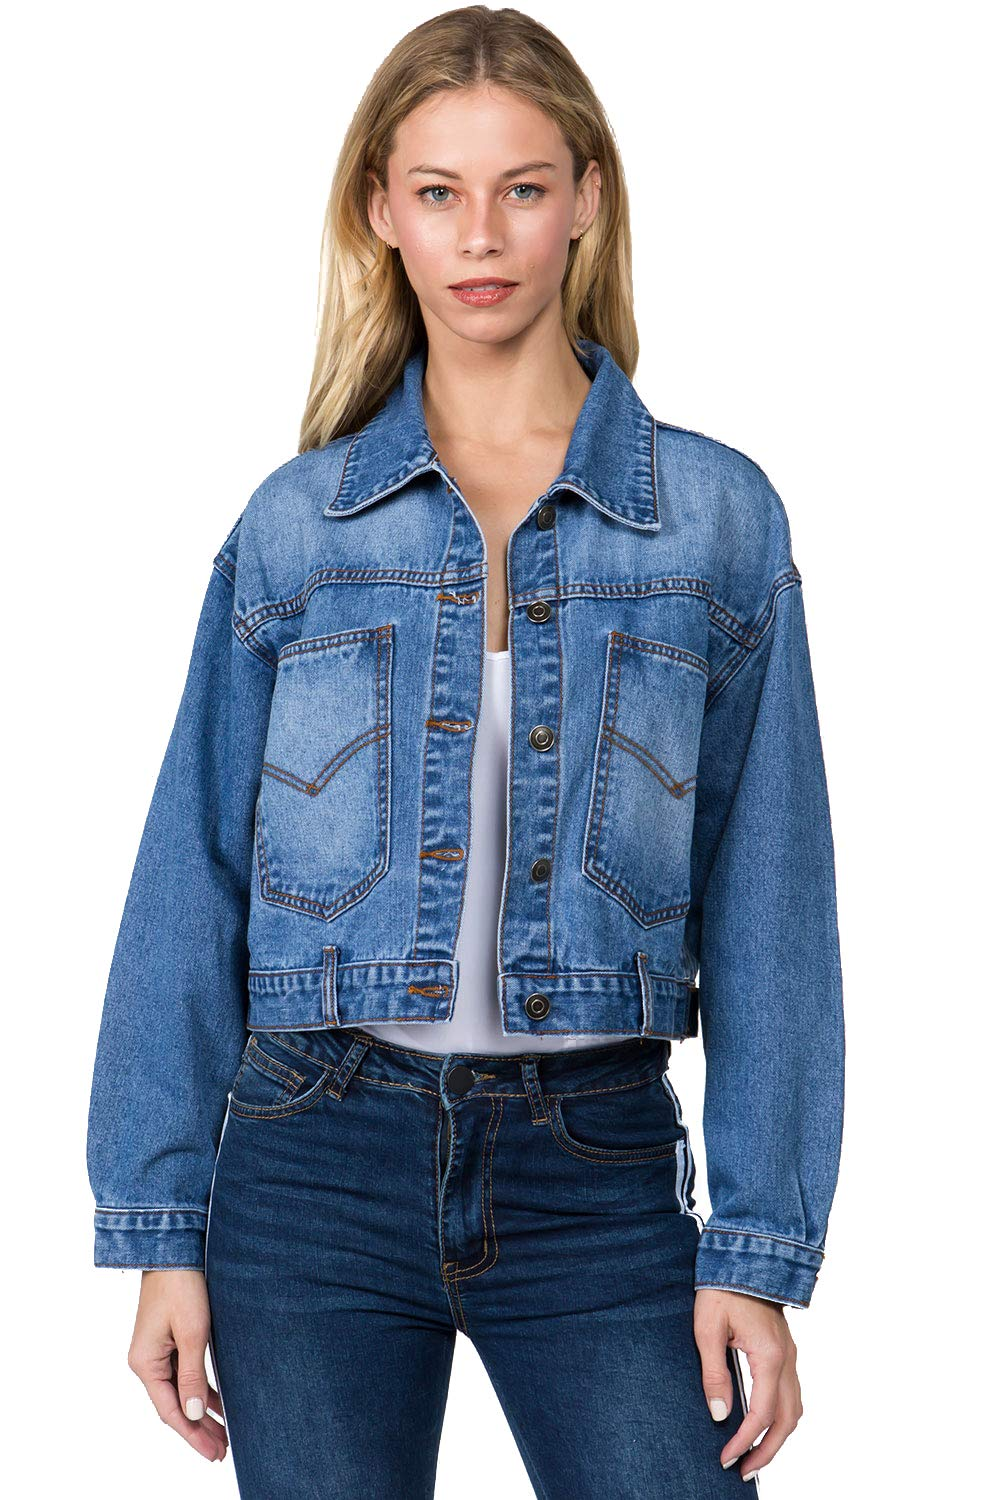 TwiinSisters Women's Boyfriend Loose Long Sleeve Big Pockets Denim Jacket with Button Closure Front and Back by TwiinSisters